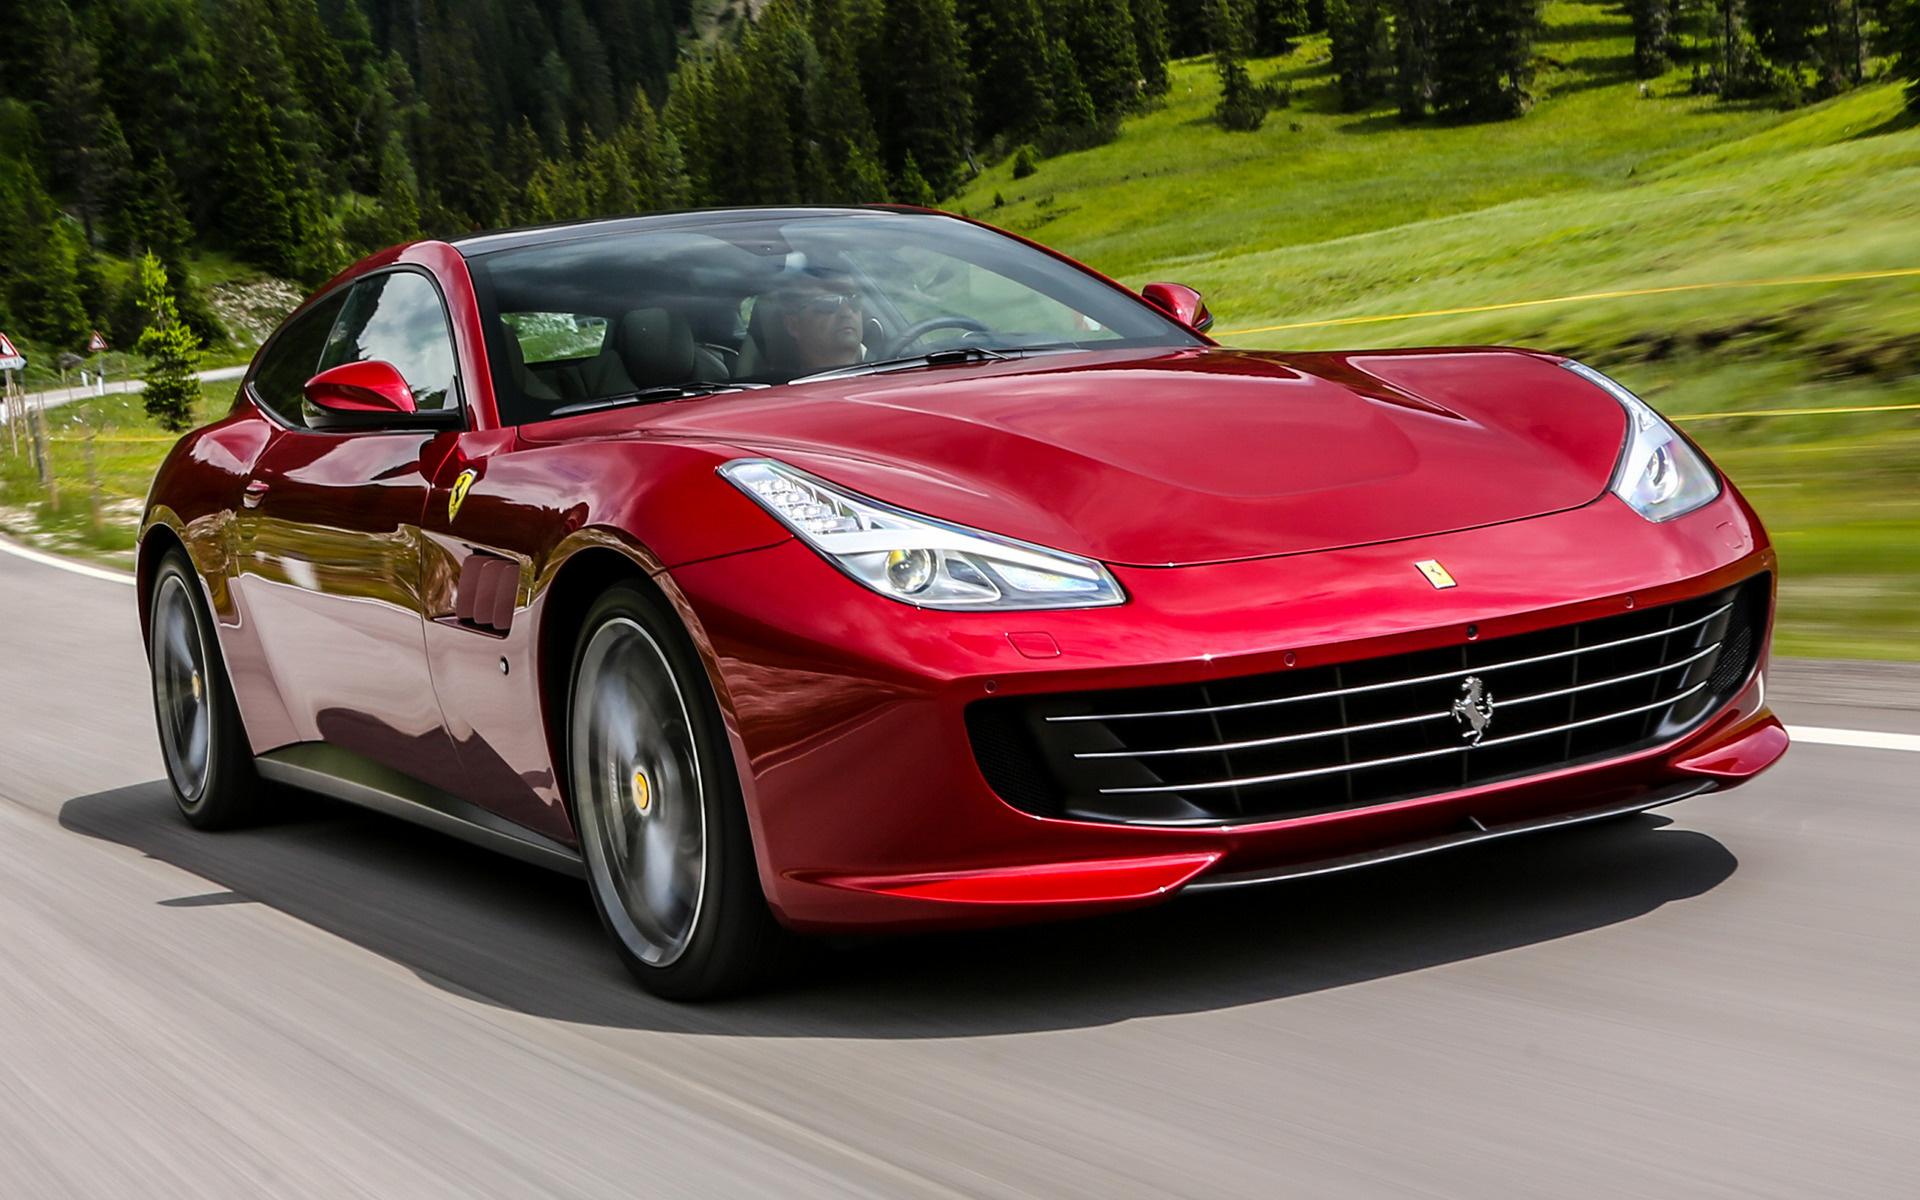 ferrari gtc4lusso 2016 wallpapers and hd images car pixel. Black Bedroom Furniture Sets. Home Design Ideas